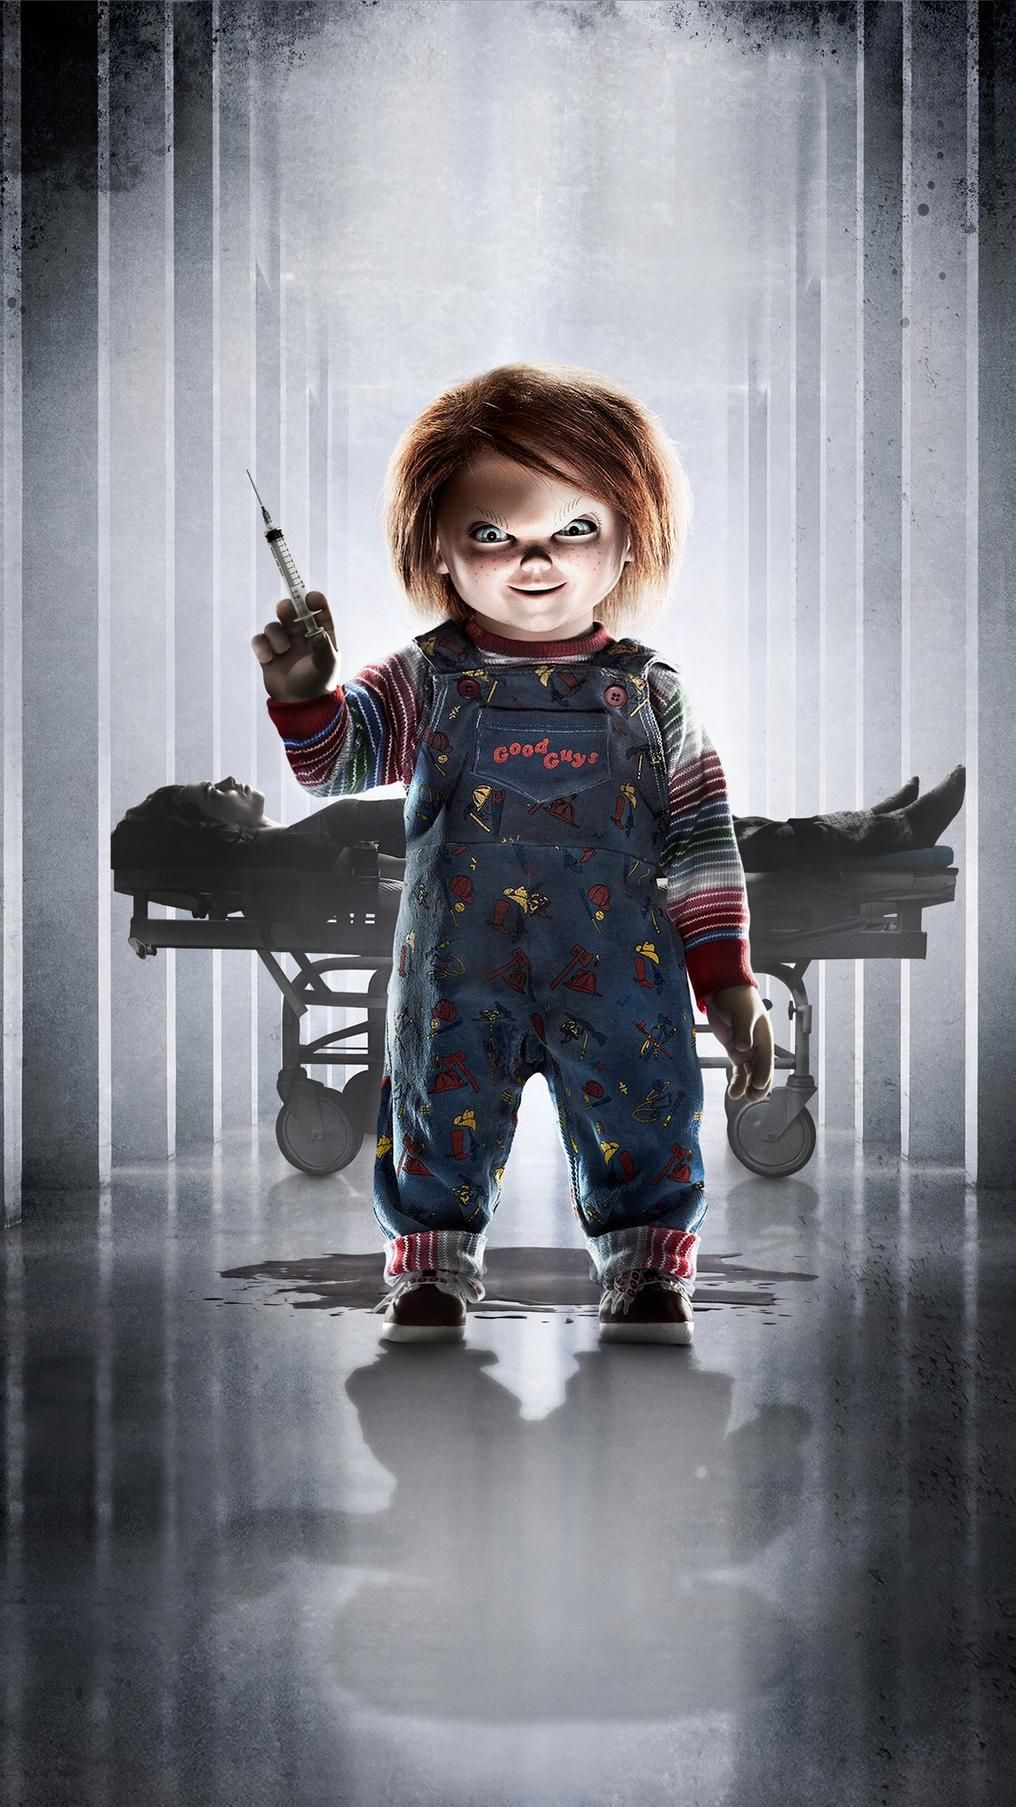 Ansel Elgort Phone Wallpapers in 2020 Chucky, Childs